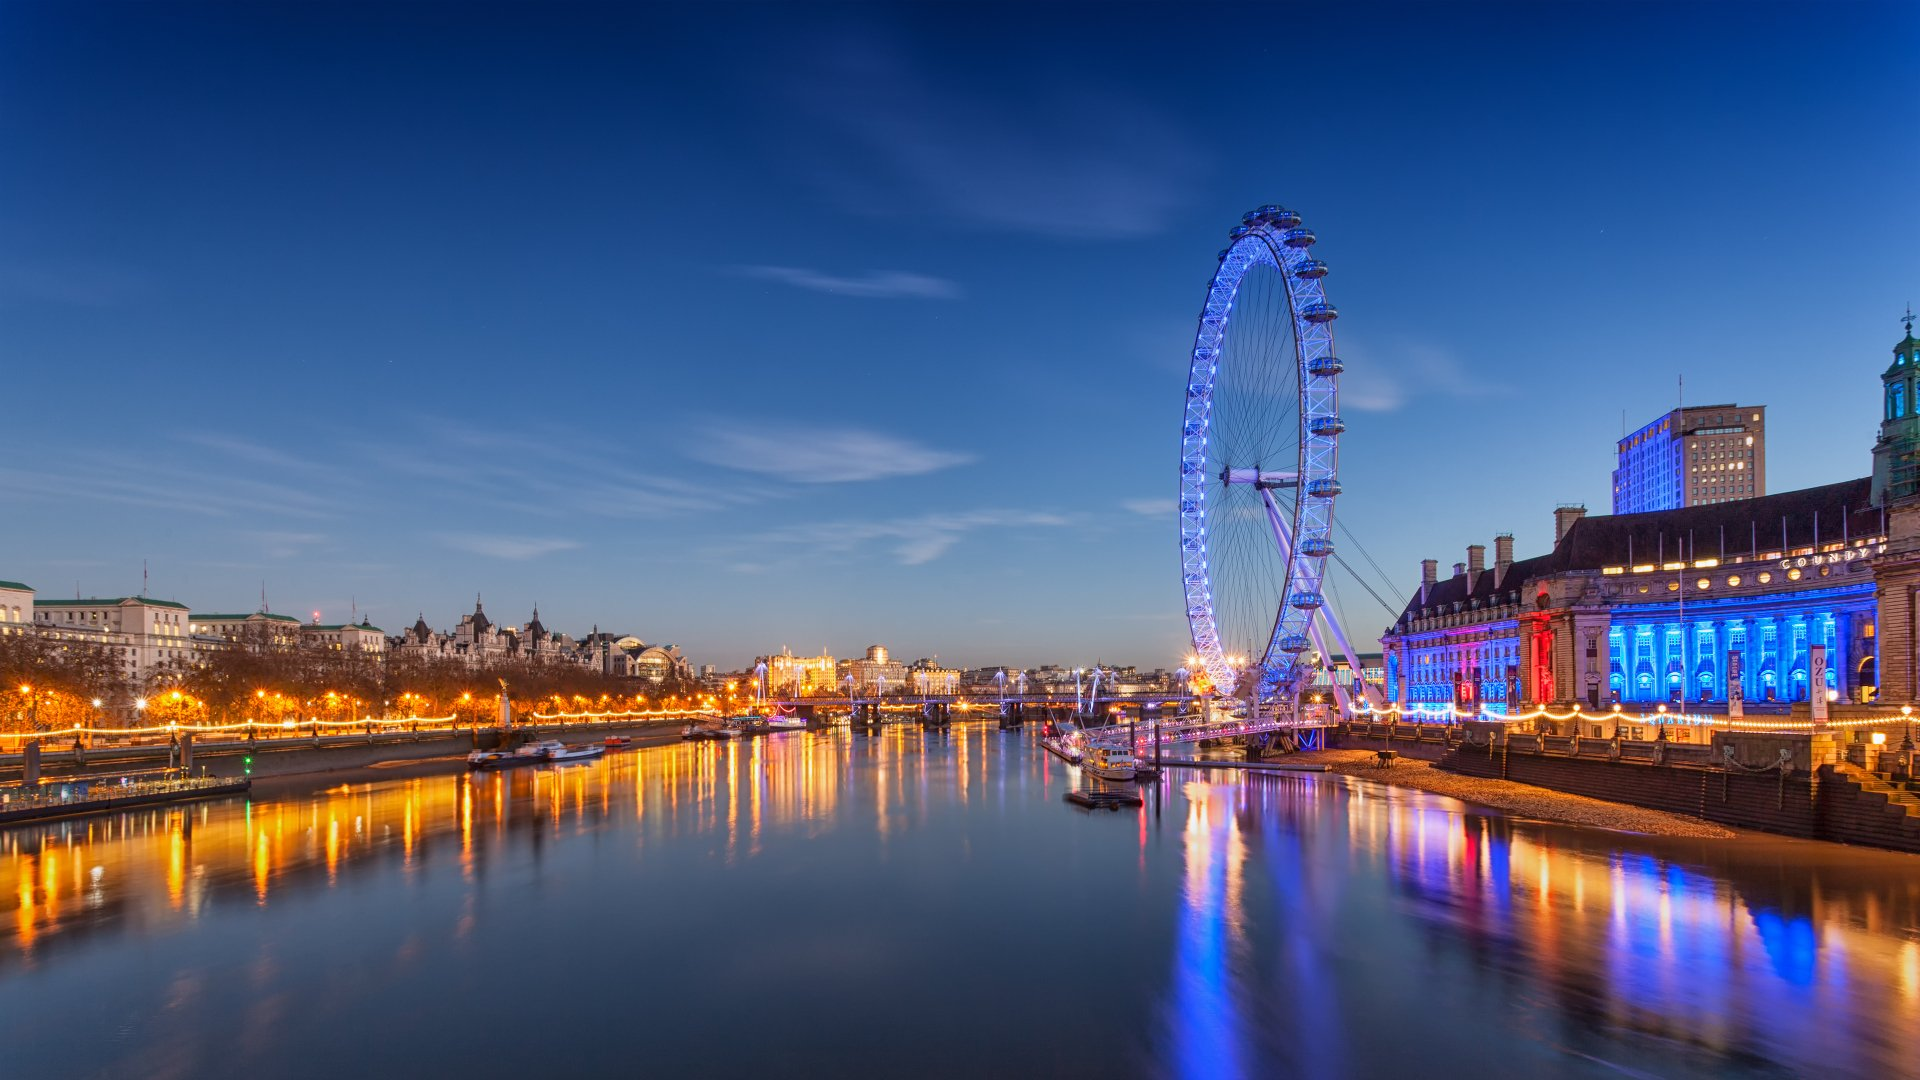 Man Made - London Eye  Night Building River London Wallpaper